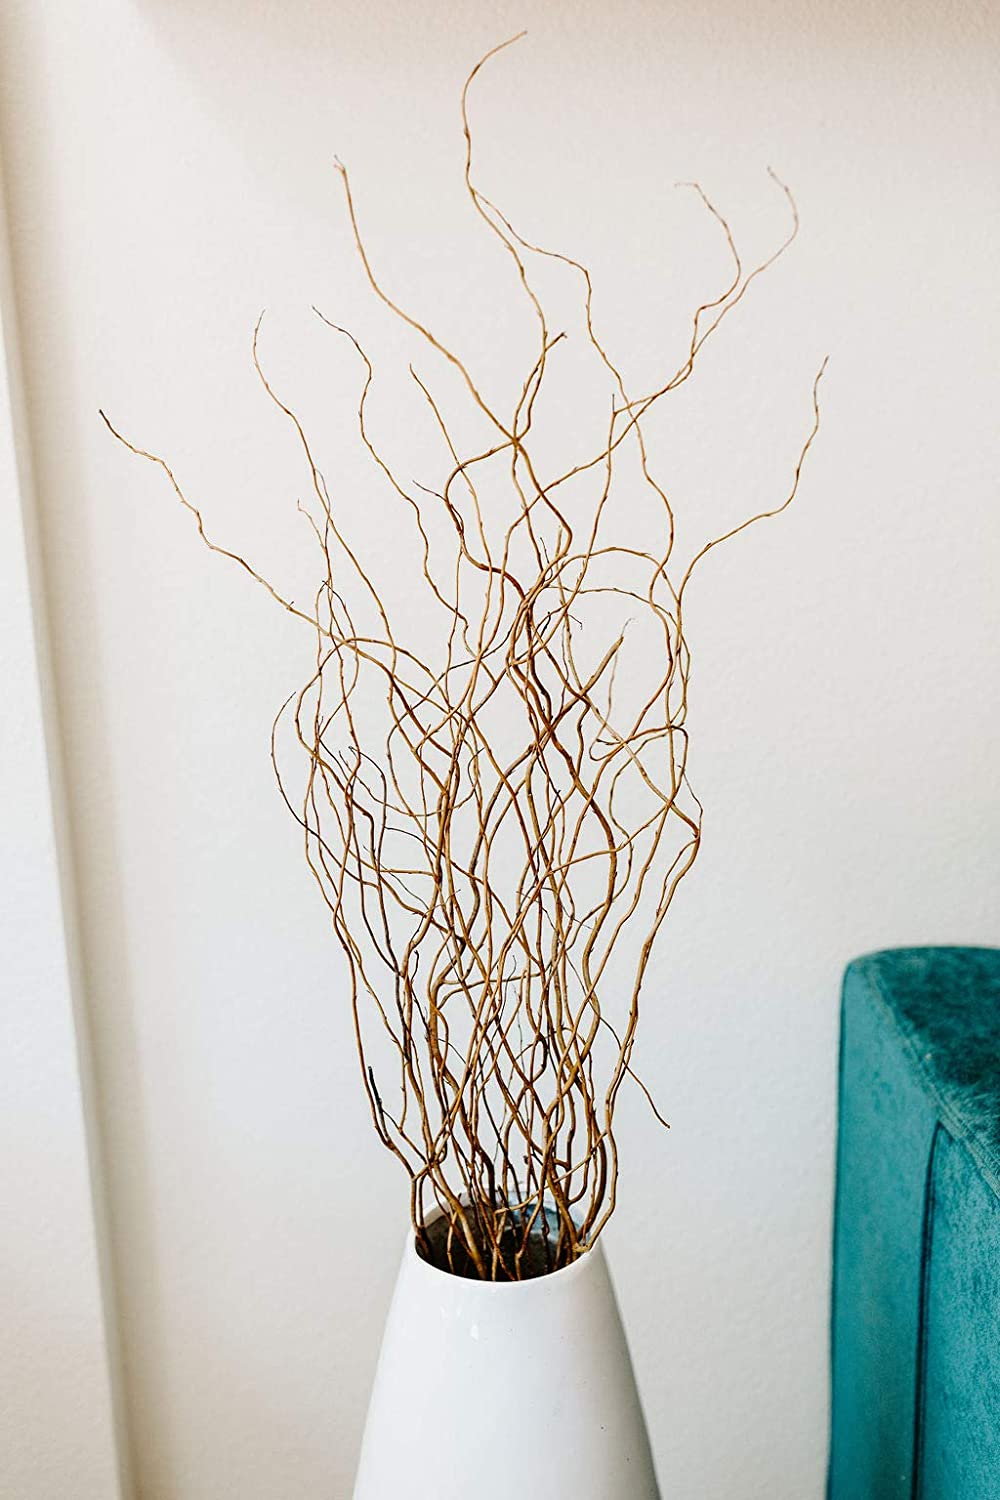 Green Floral Crafts - Curly Willow Branches, 6-6.5 Ft Tall - Natural & Caspia Floral Accent